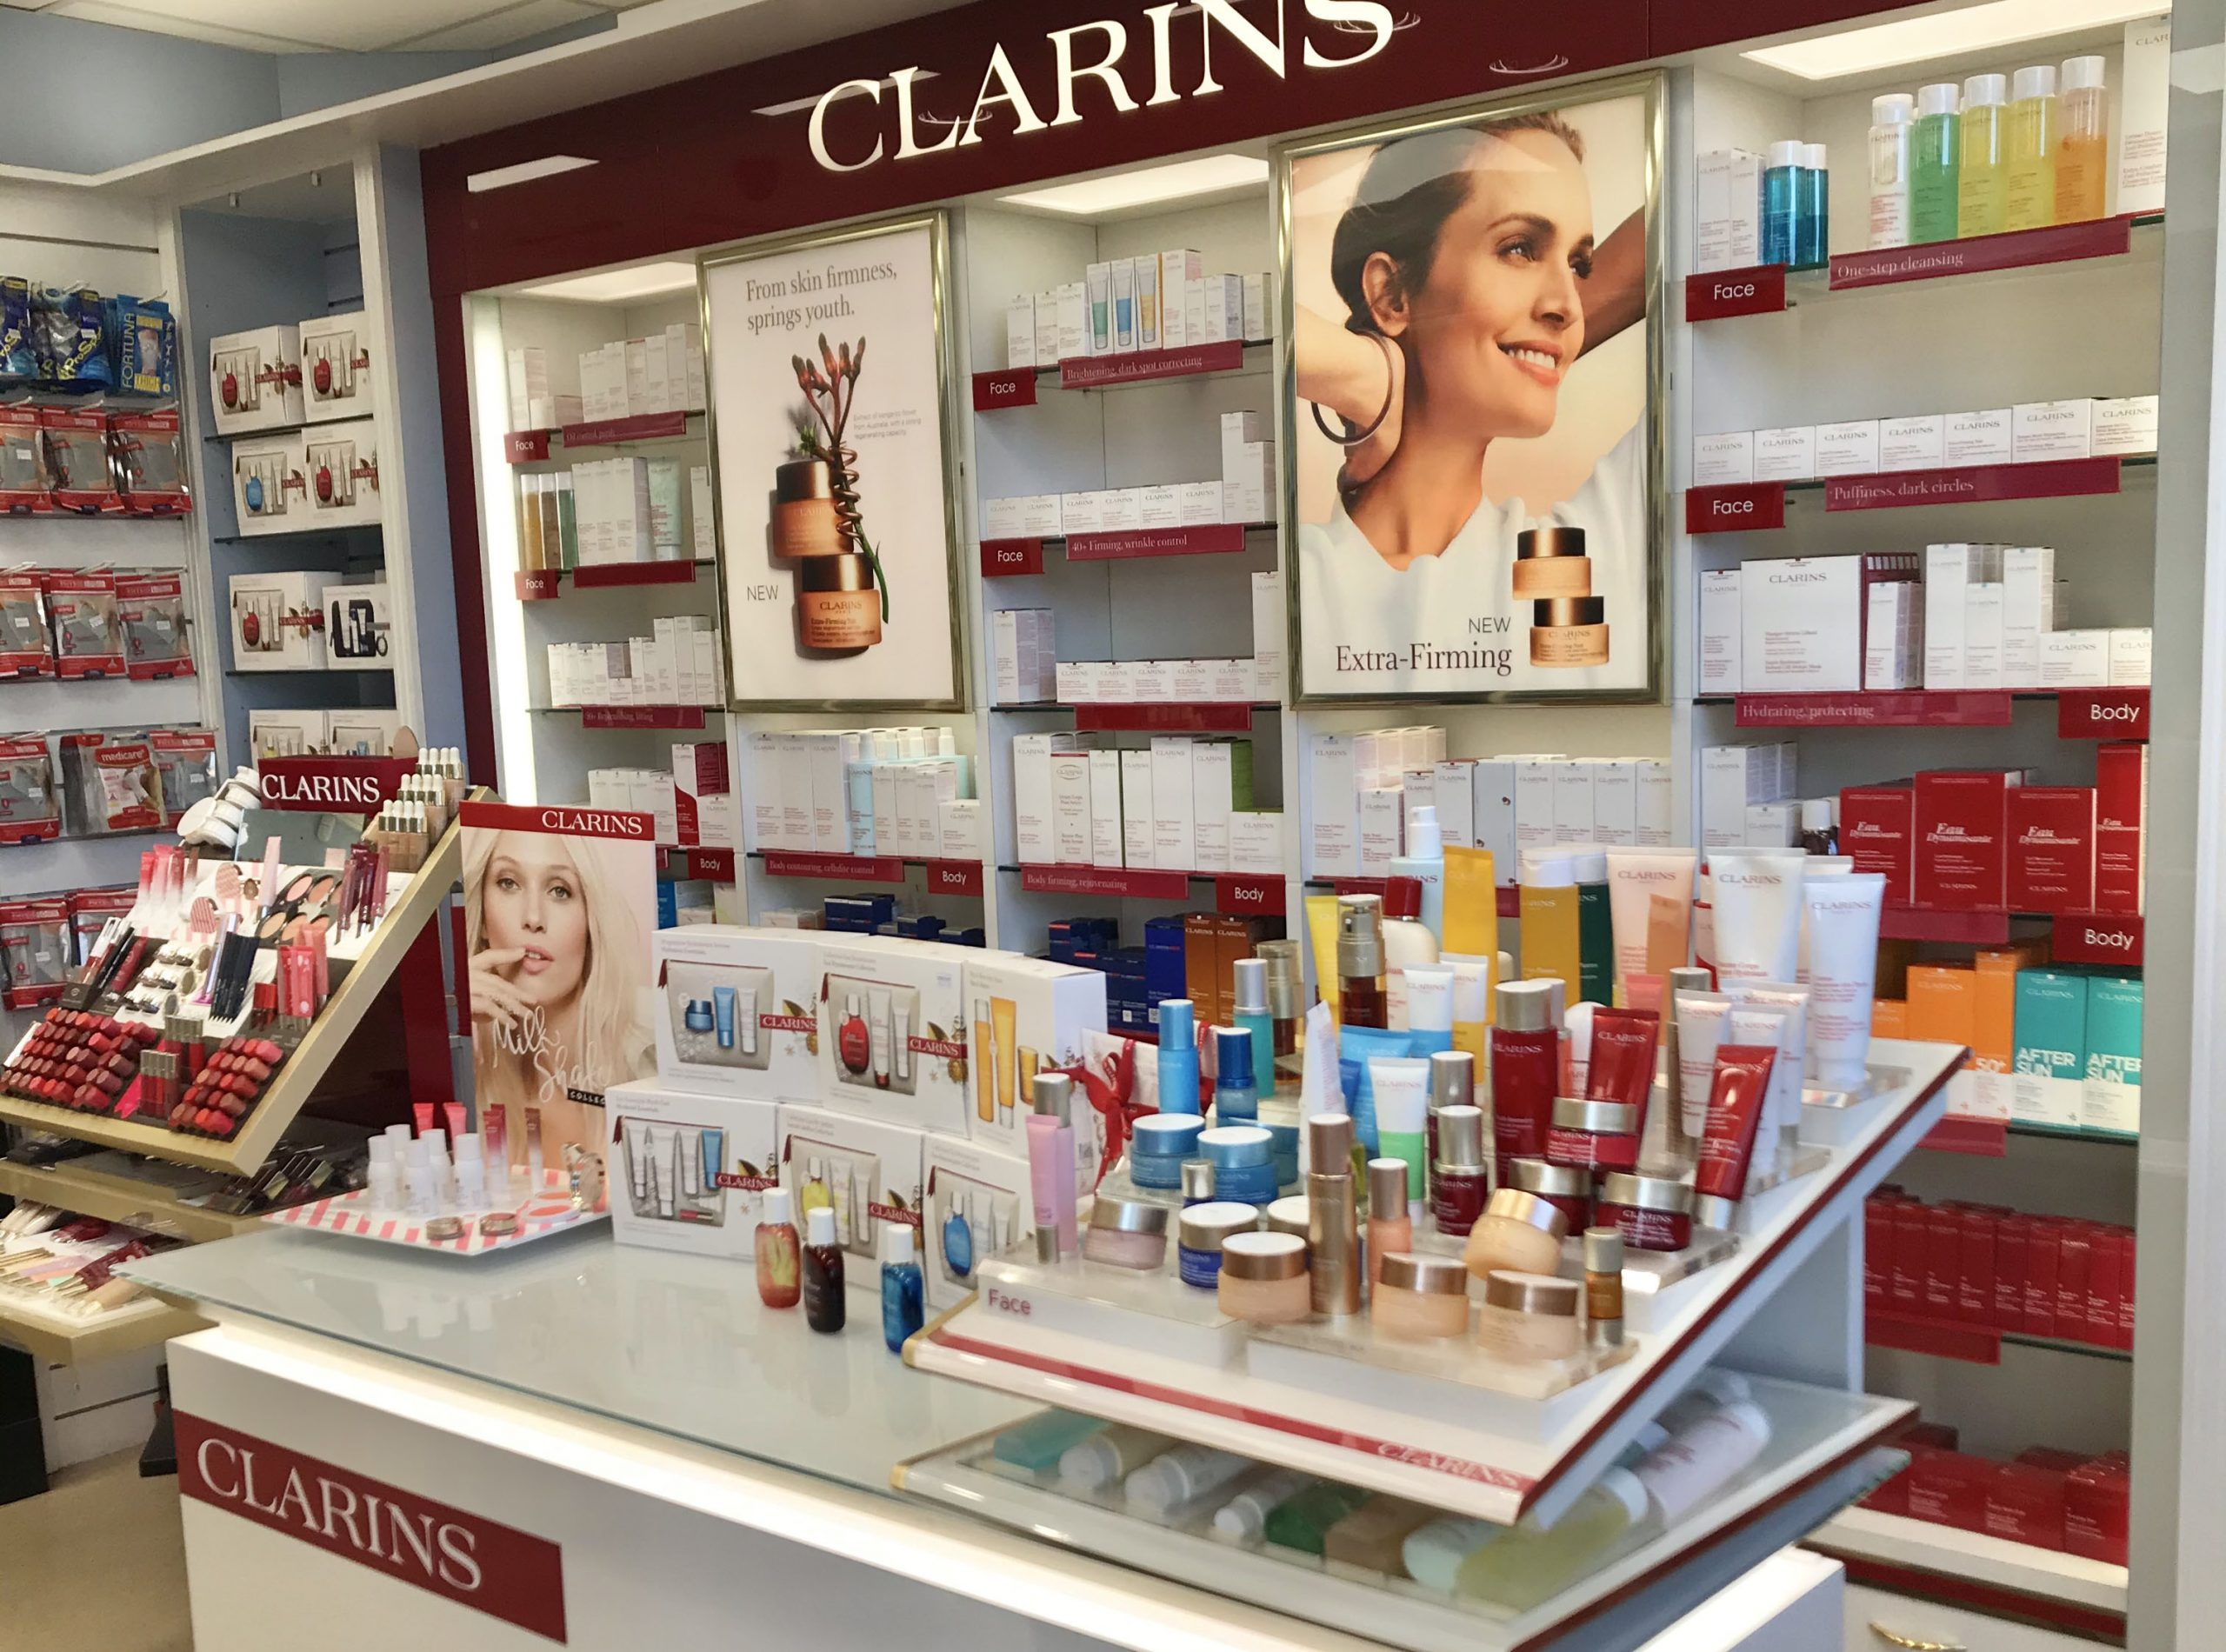 Clarins counter in pharmacy